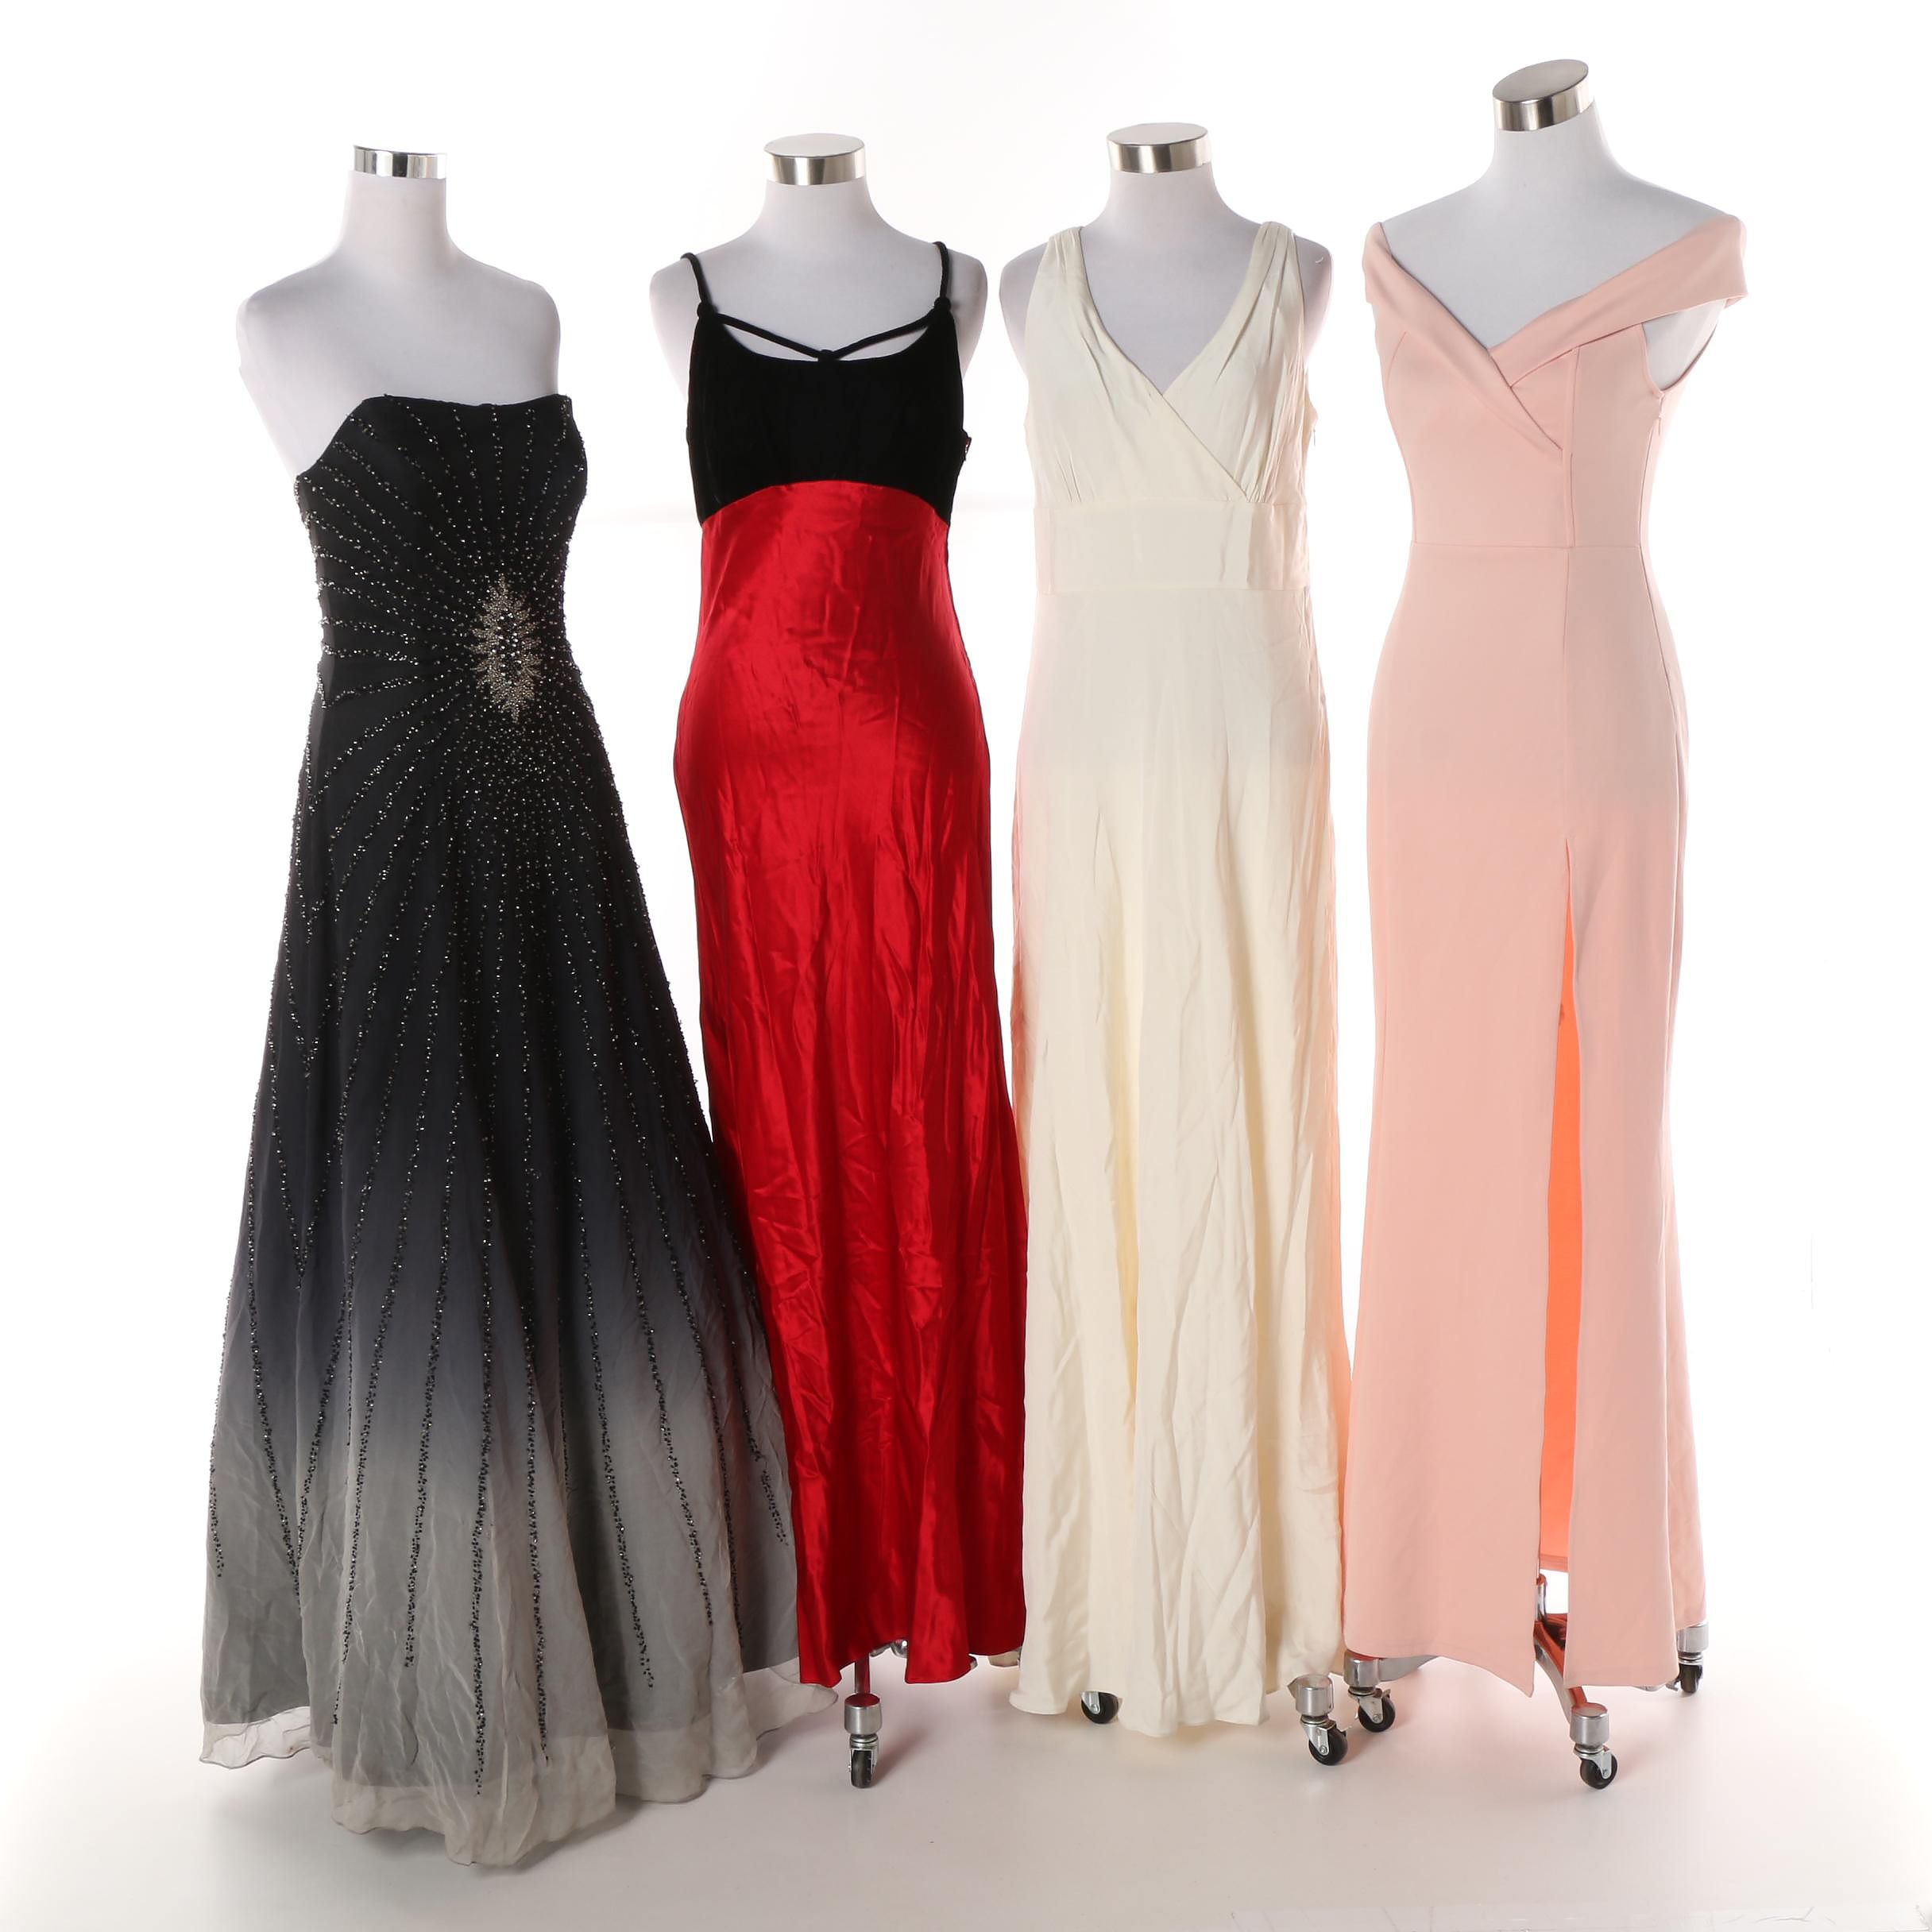 Women's Gowns including Beaded and Silk